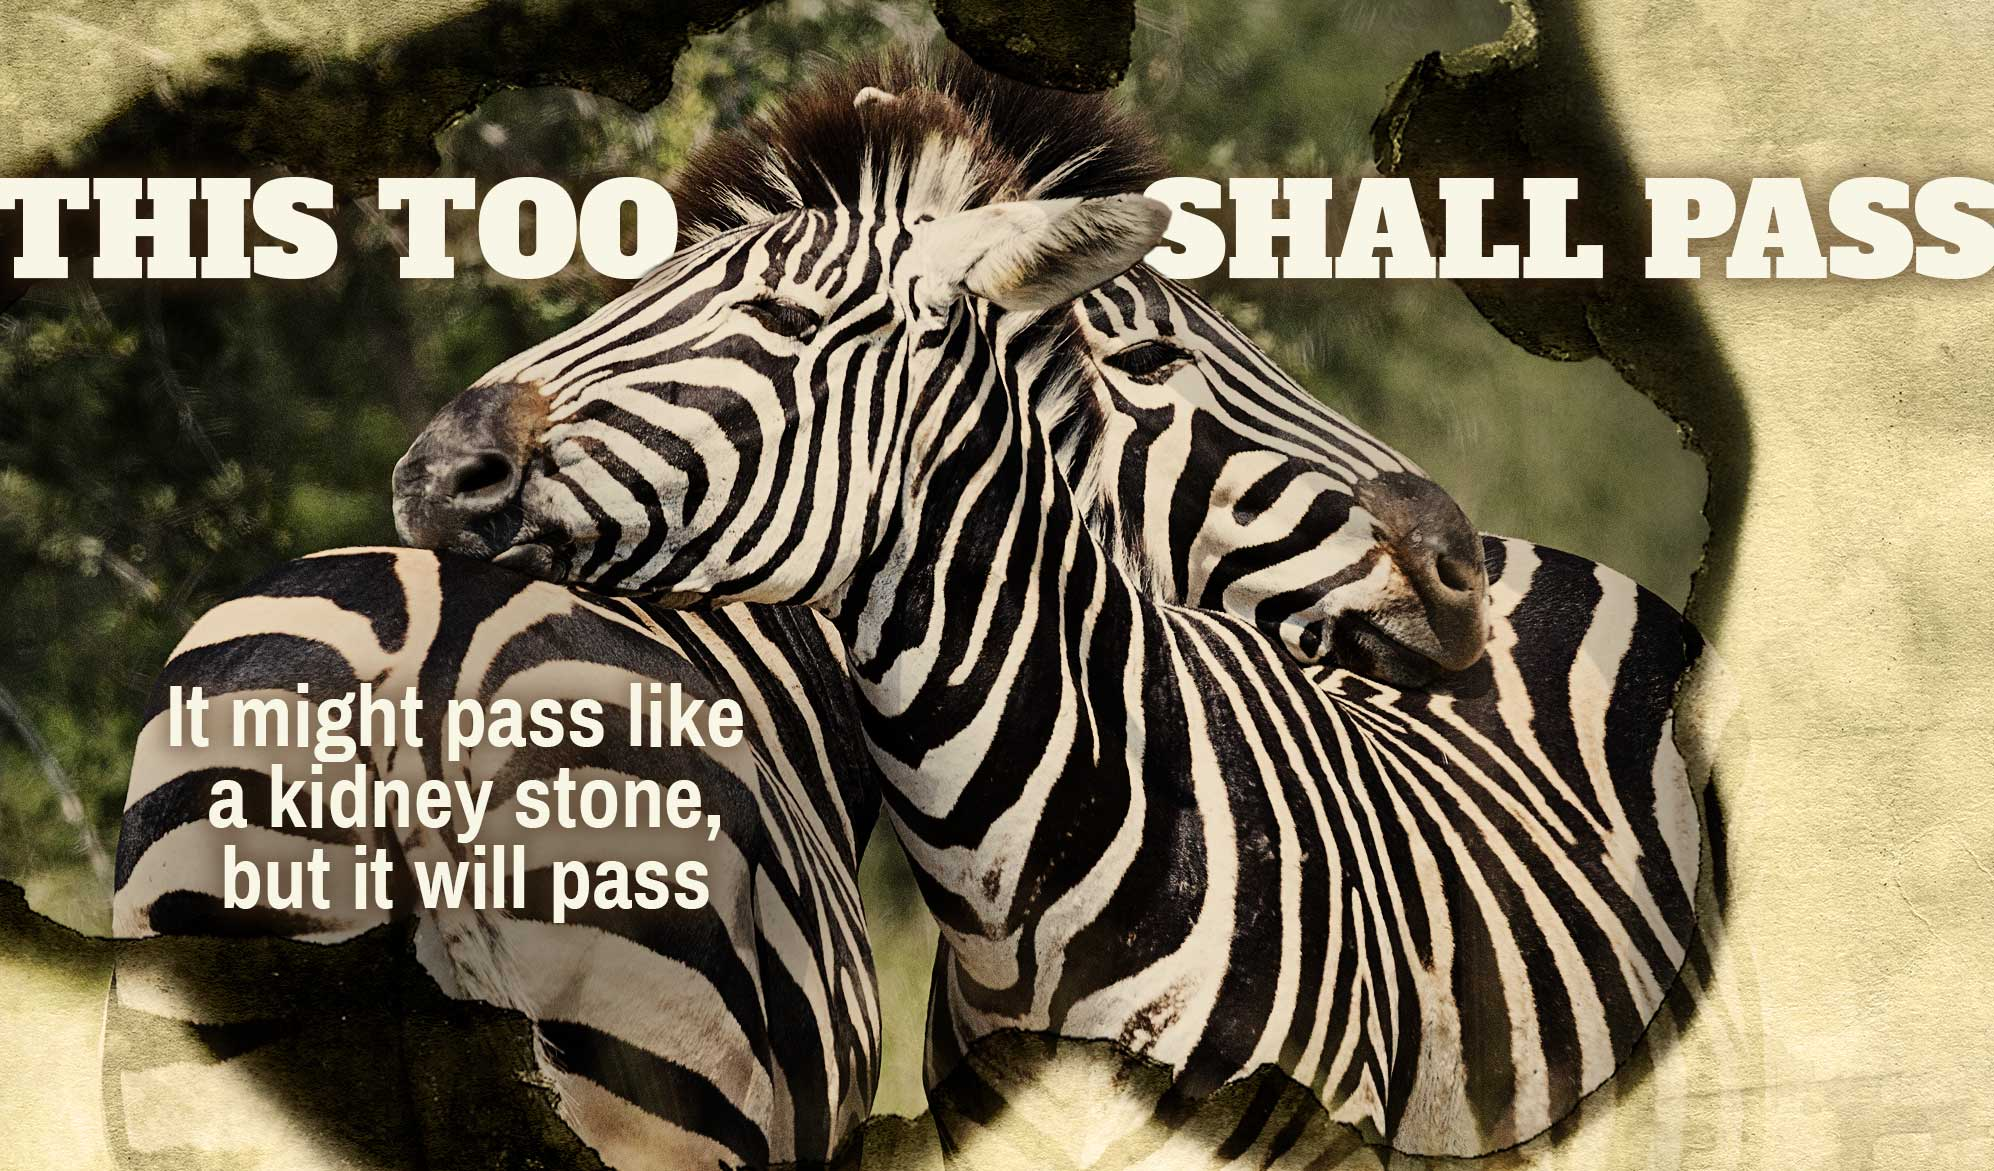 daily inspirational quote image: 2 zebras nuzzling